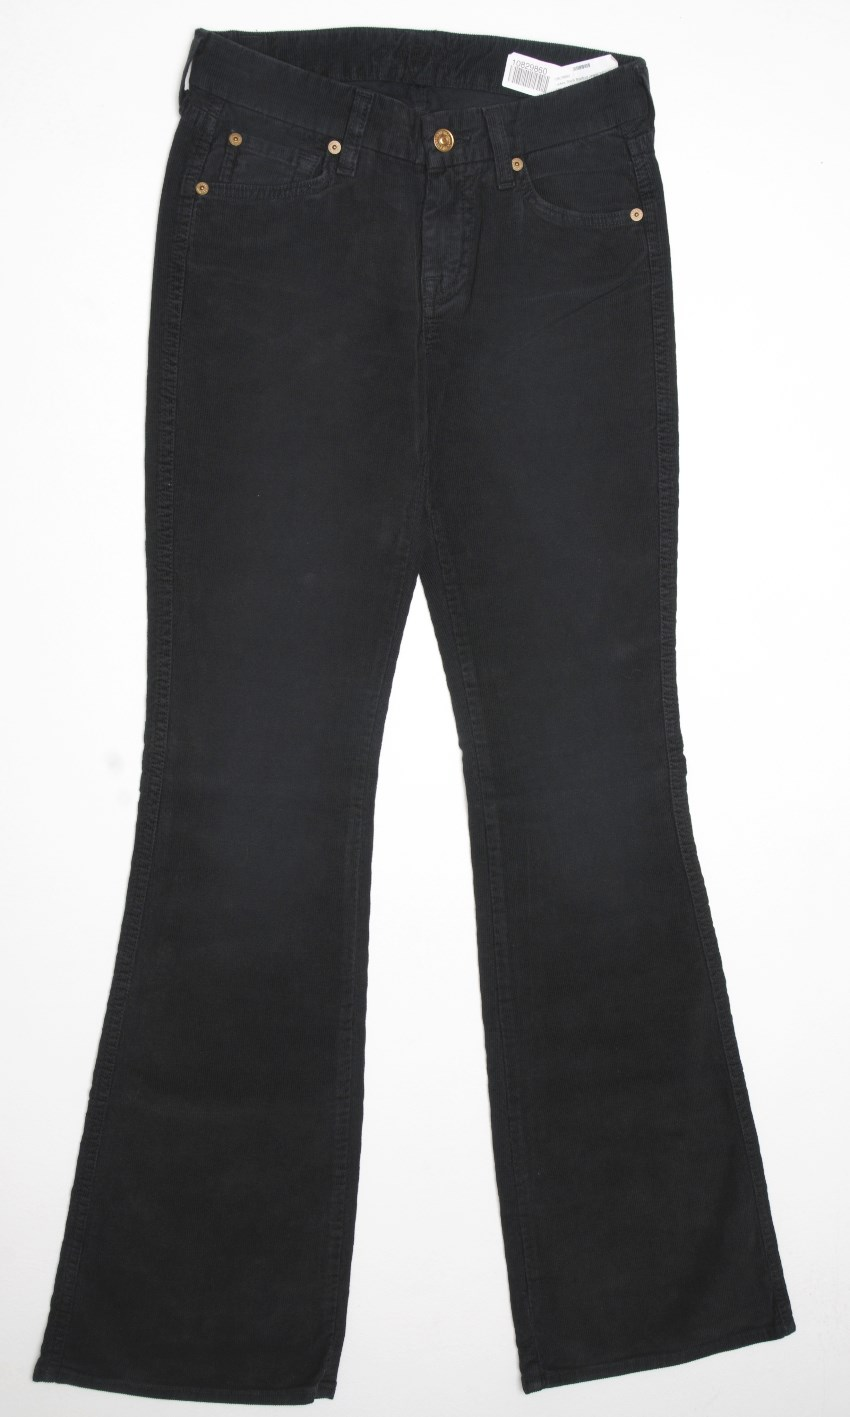 7 for all mankind black cordroy jeans